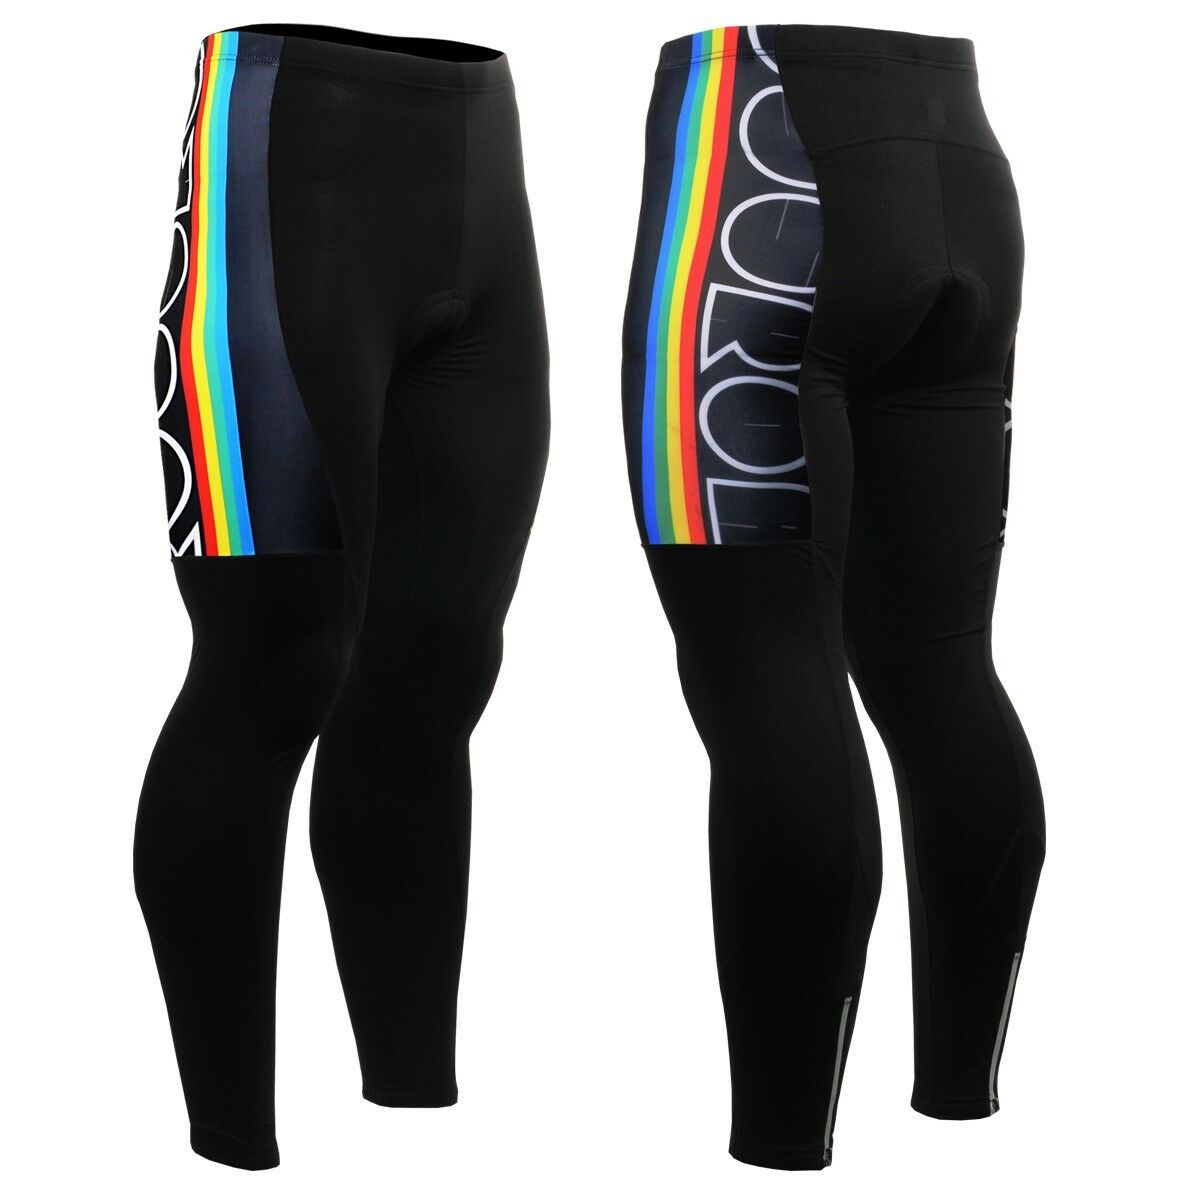 FIXGEAR LT-2 Cycling Pants Road Mountain Bike Wear MTB Bicycle Clothing